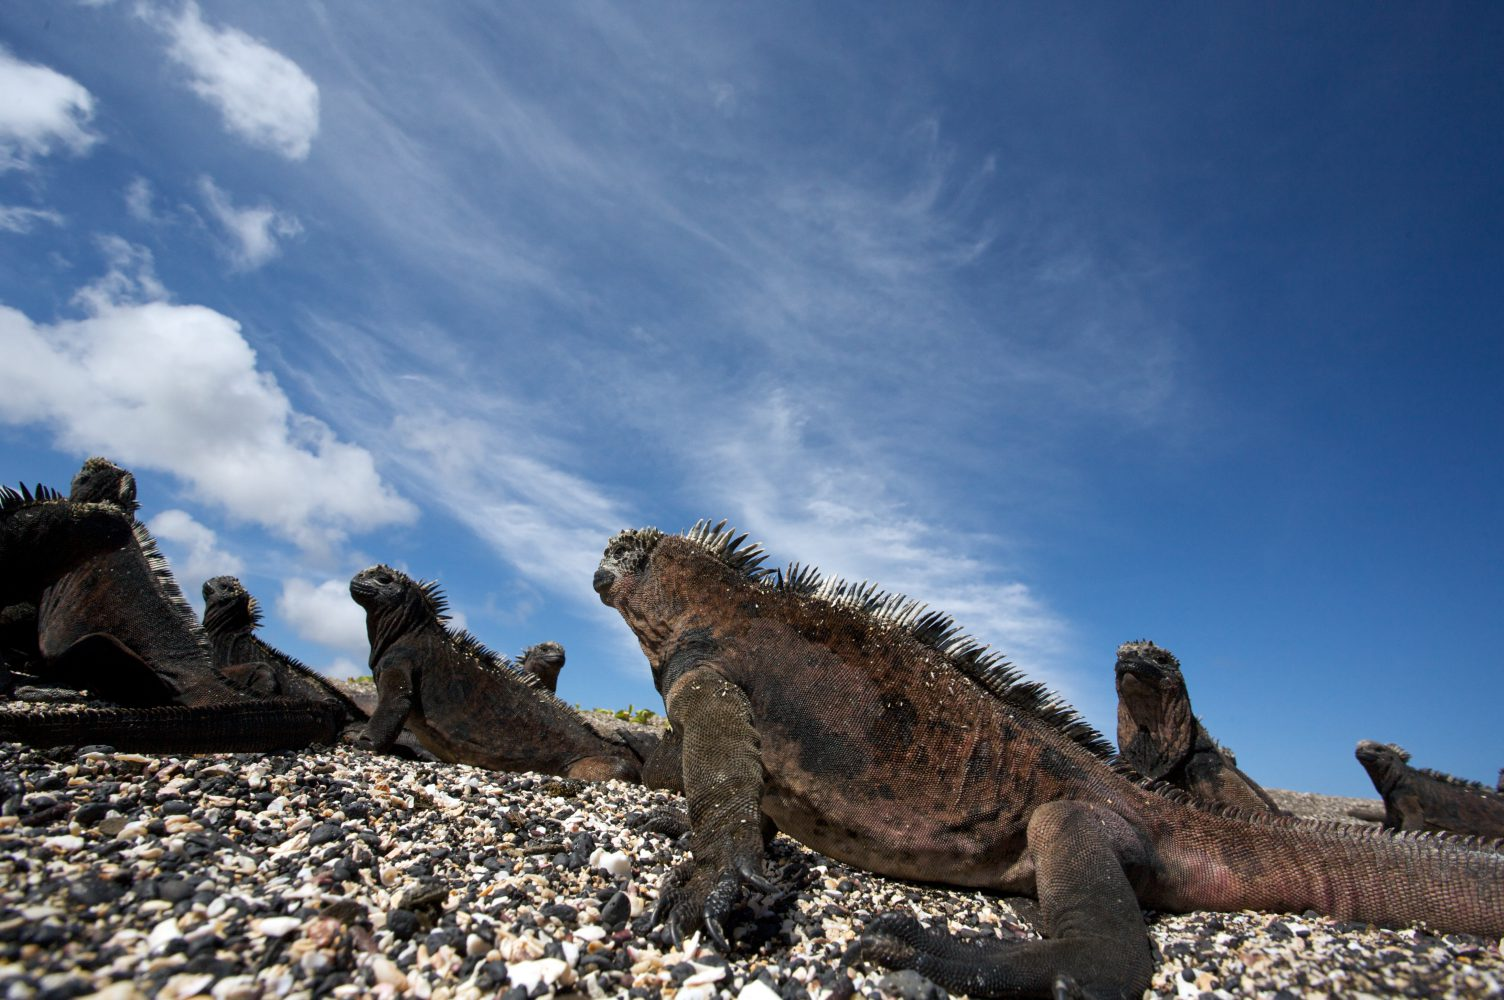 Cruising Galápagos: The Land Before Time